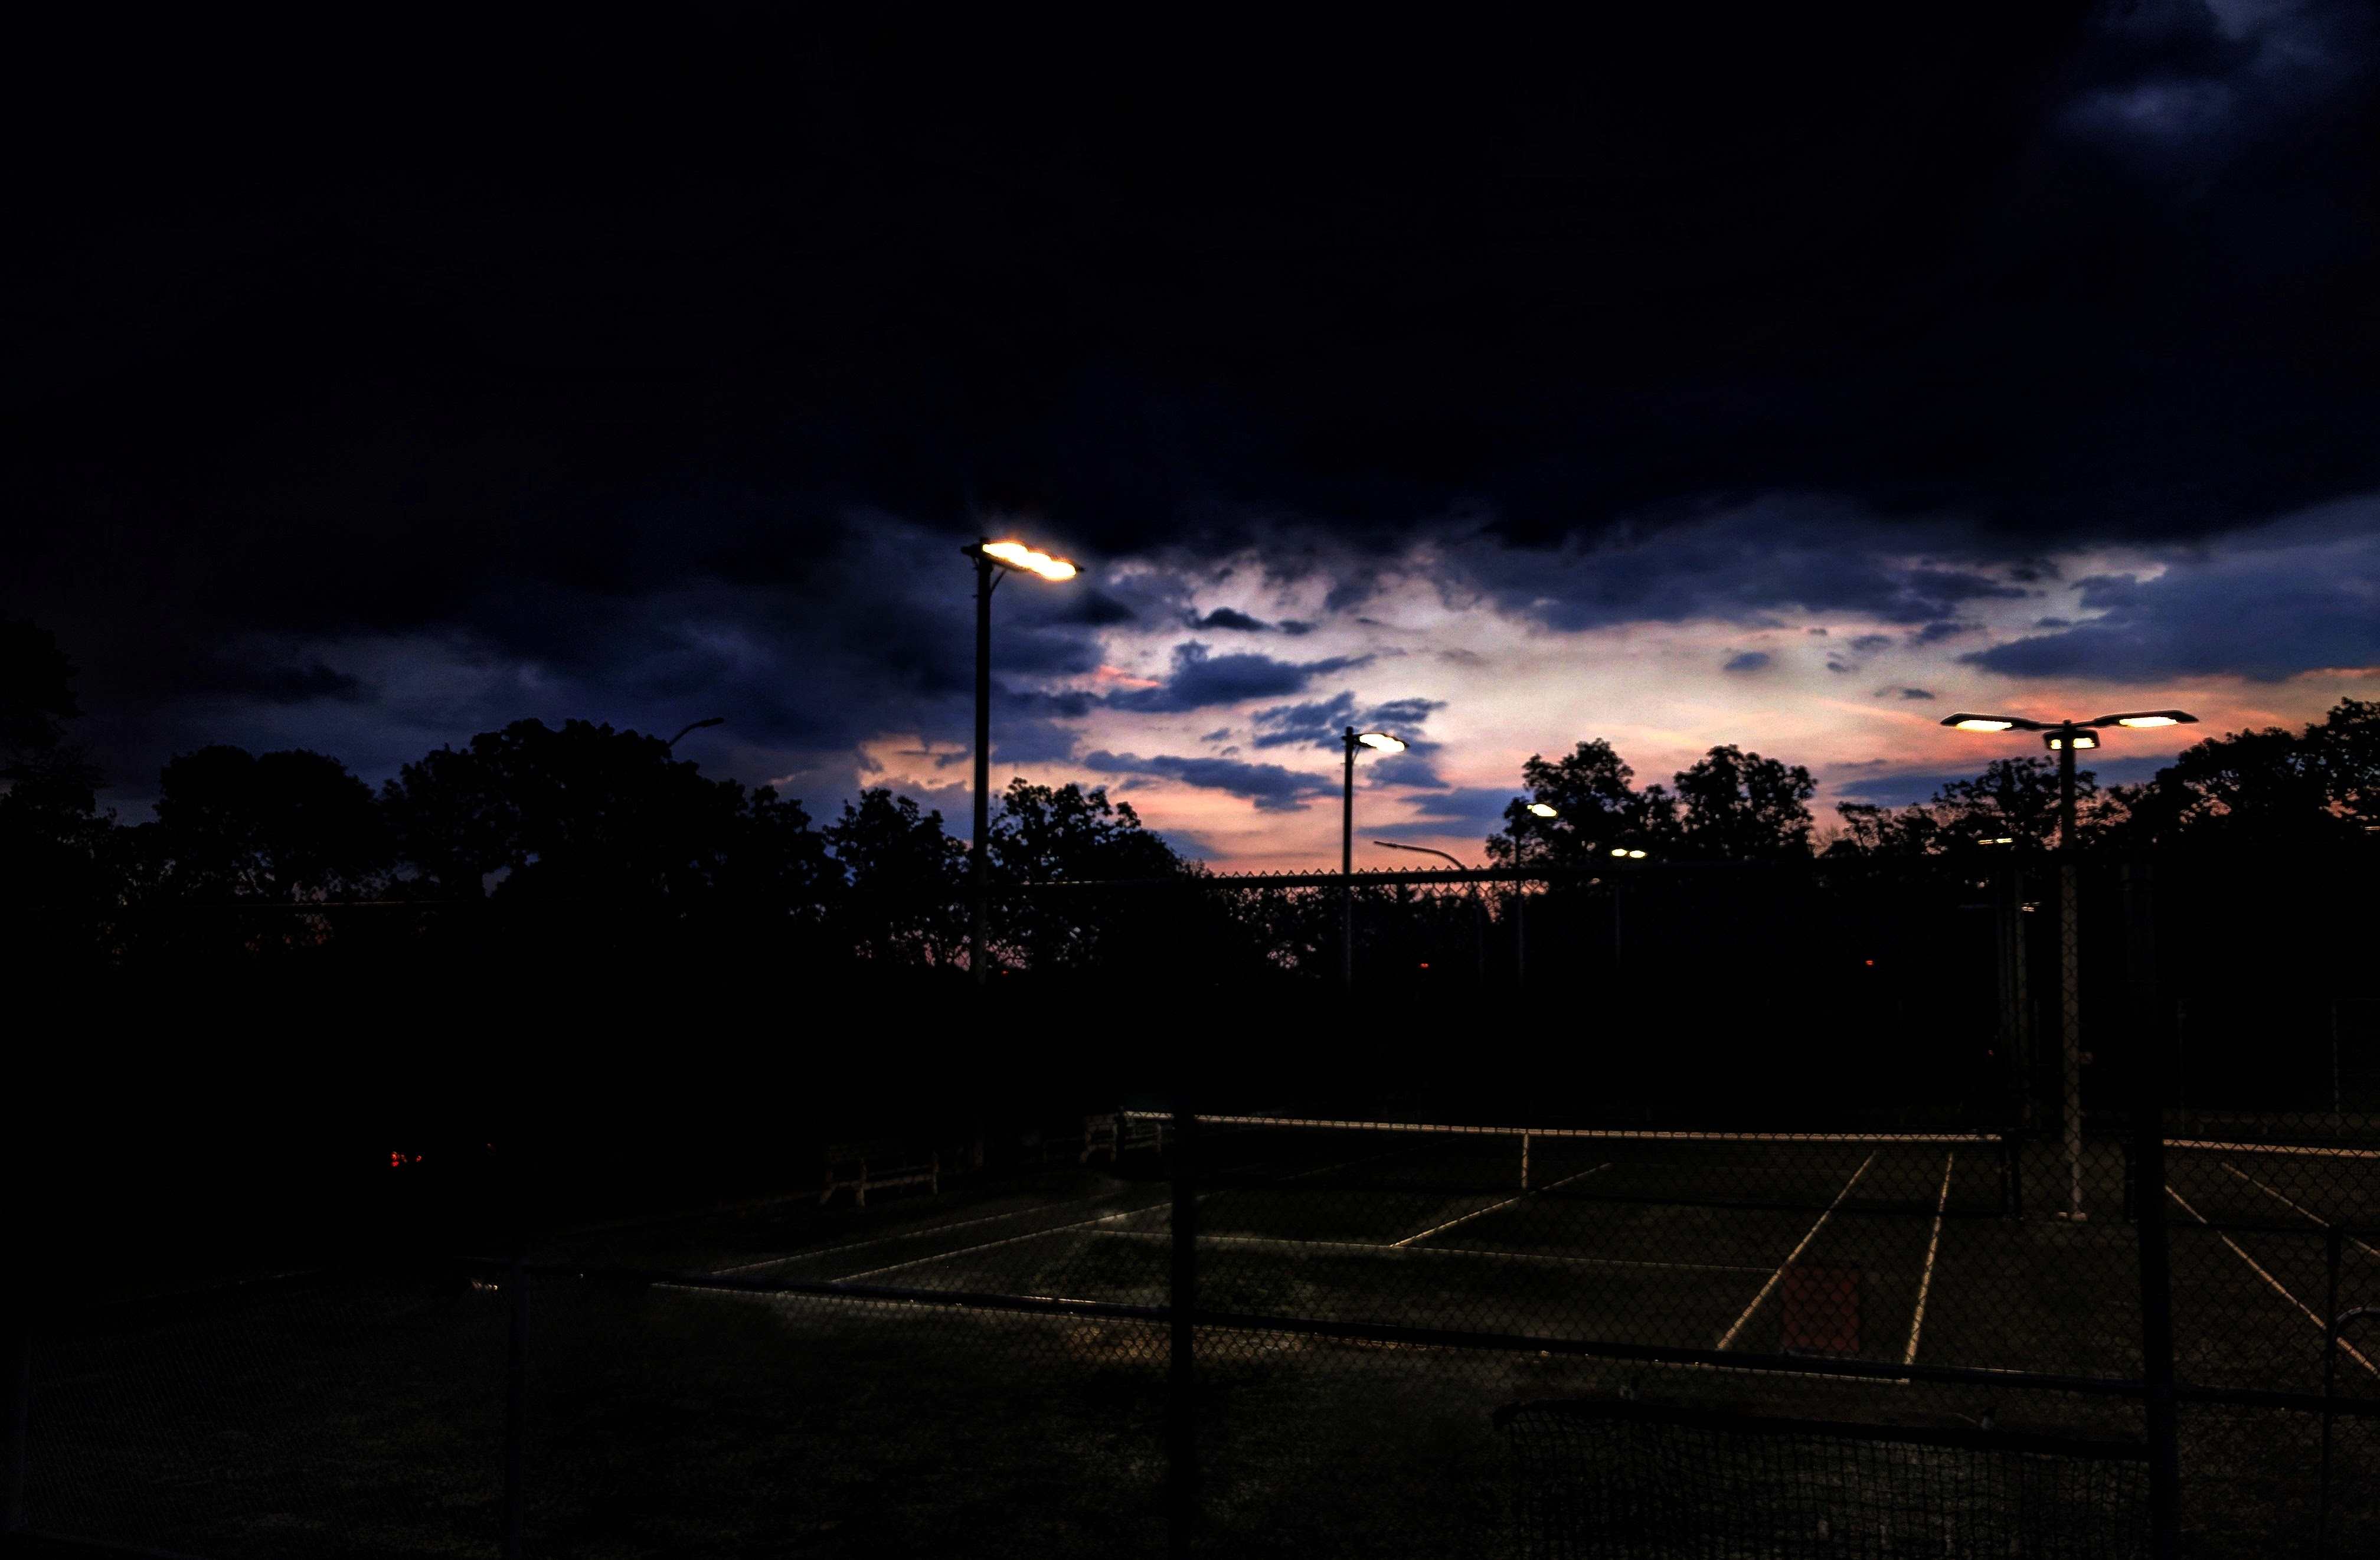 Dark clouds over a tennis court